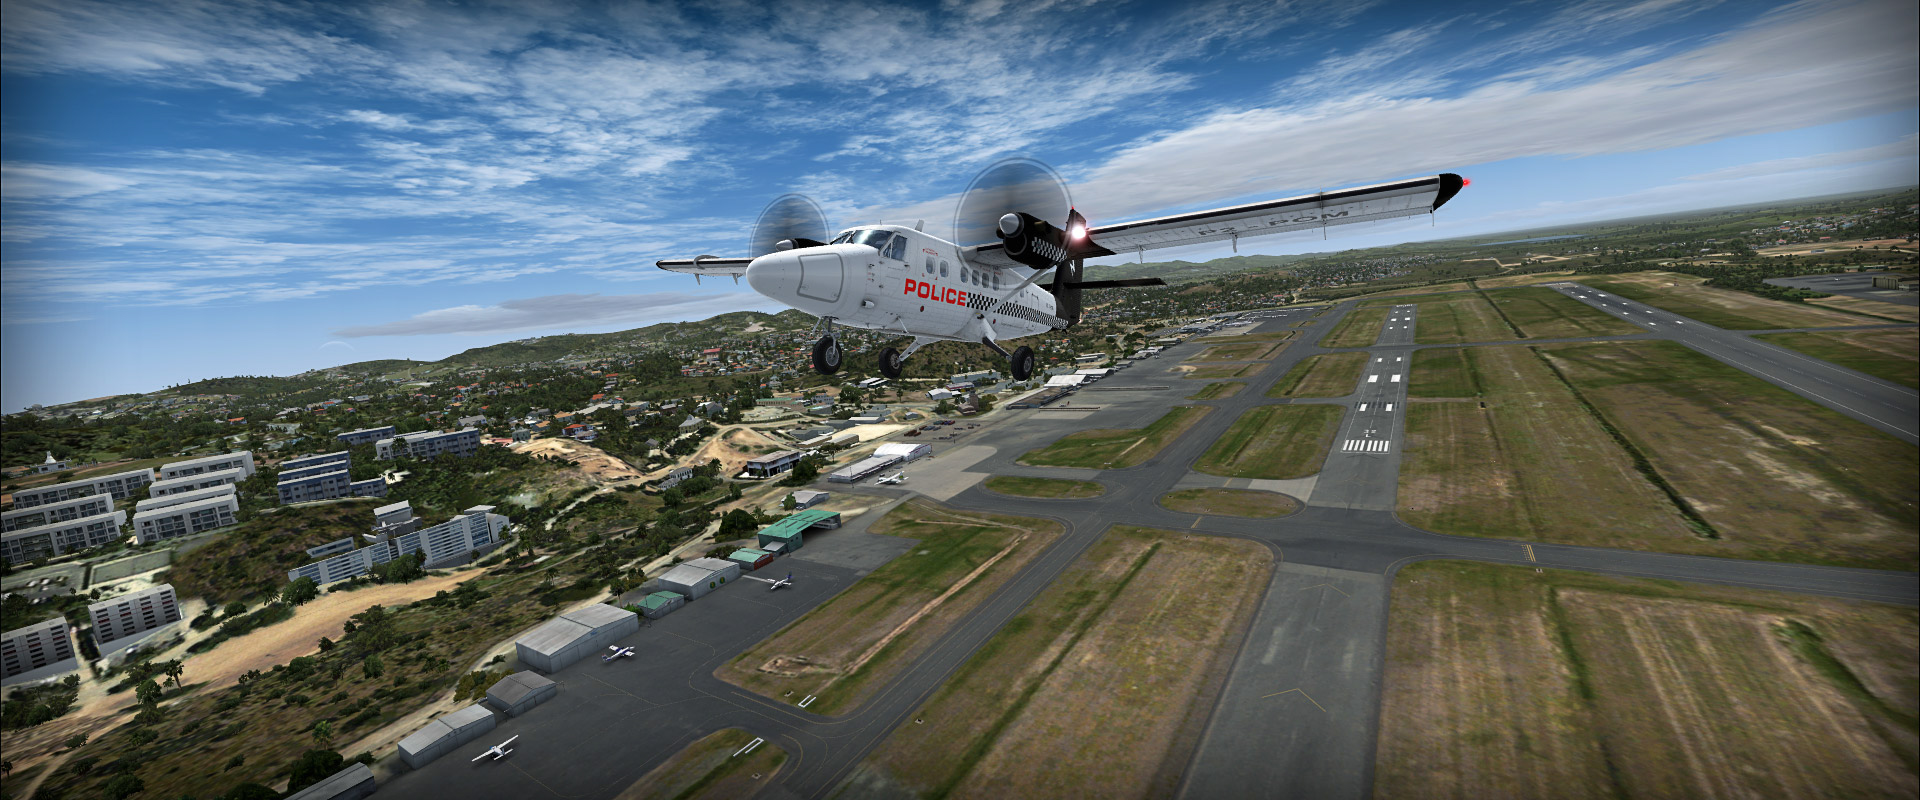 PNG #1 - Papua New Guinea - ORBX sceneries • C-Aviation